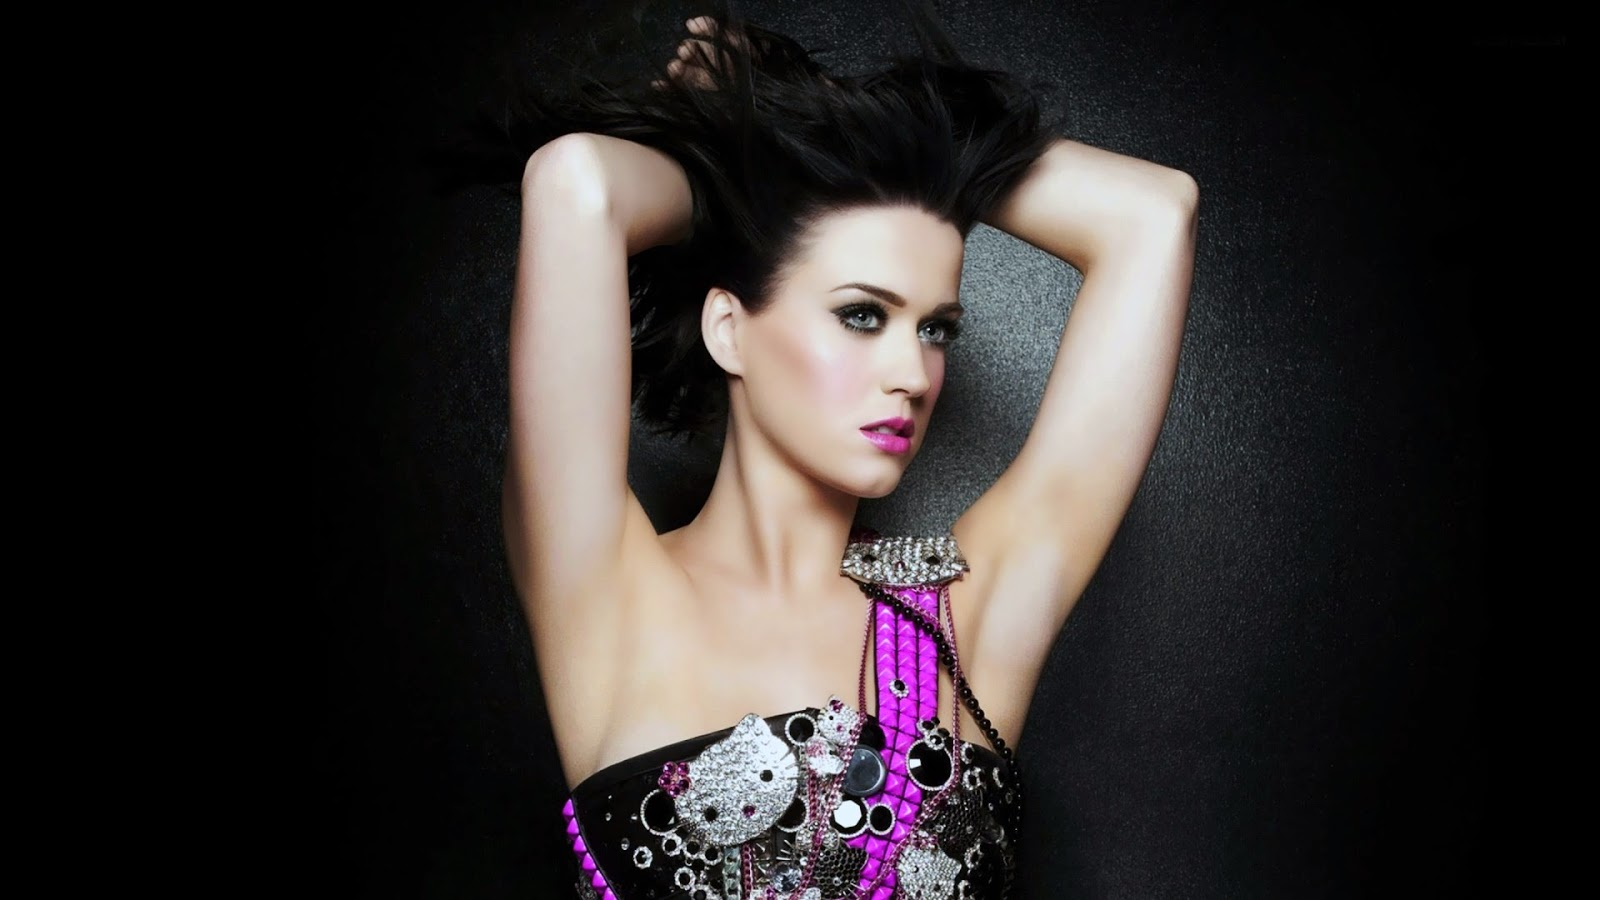 Return to katy perry: hot pics and biography